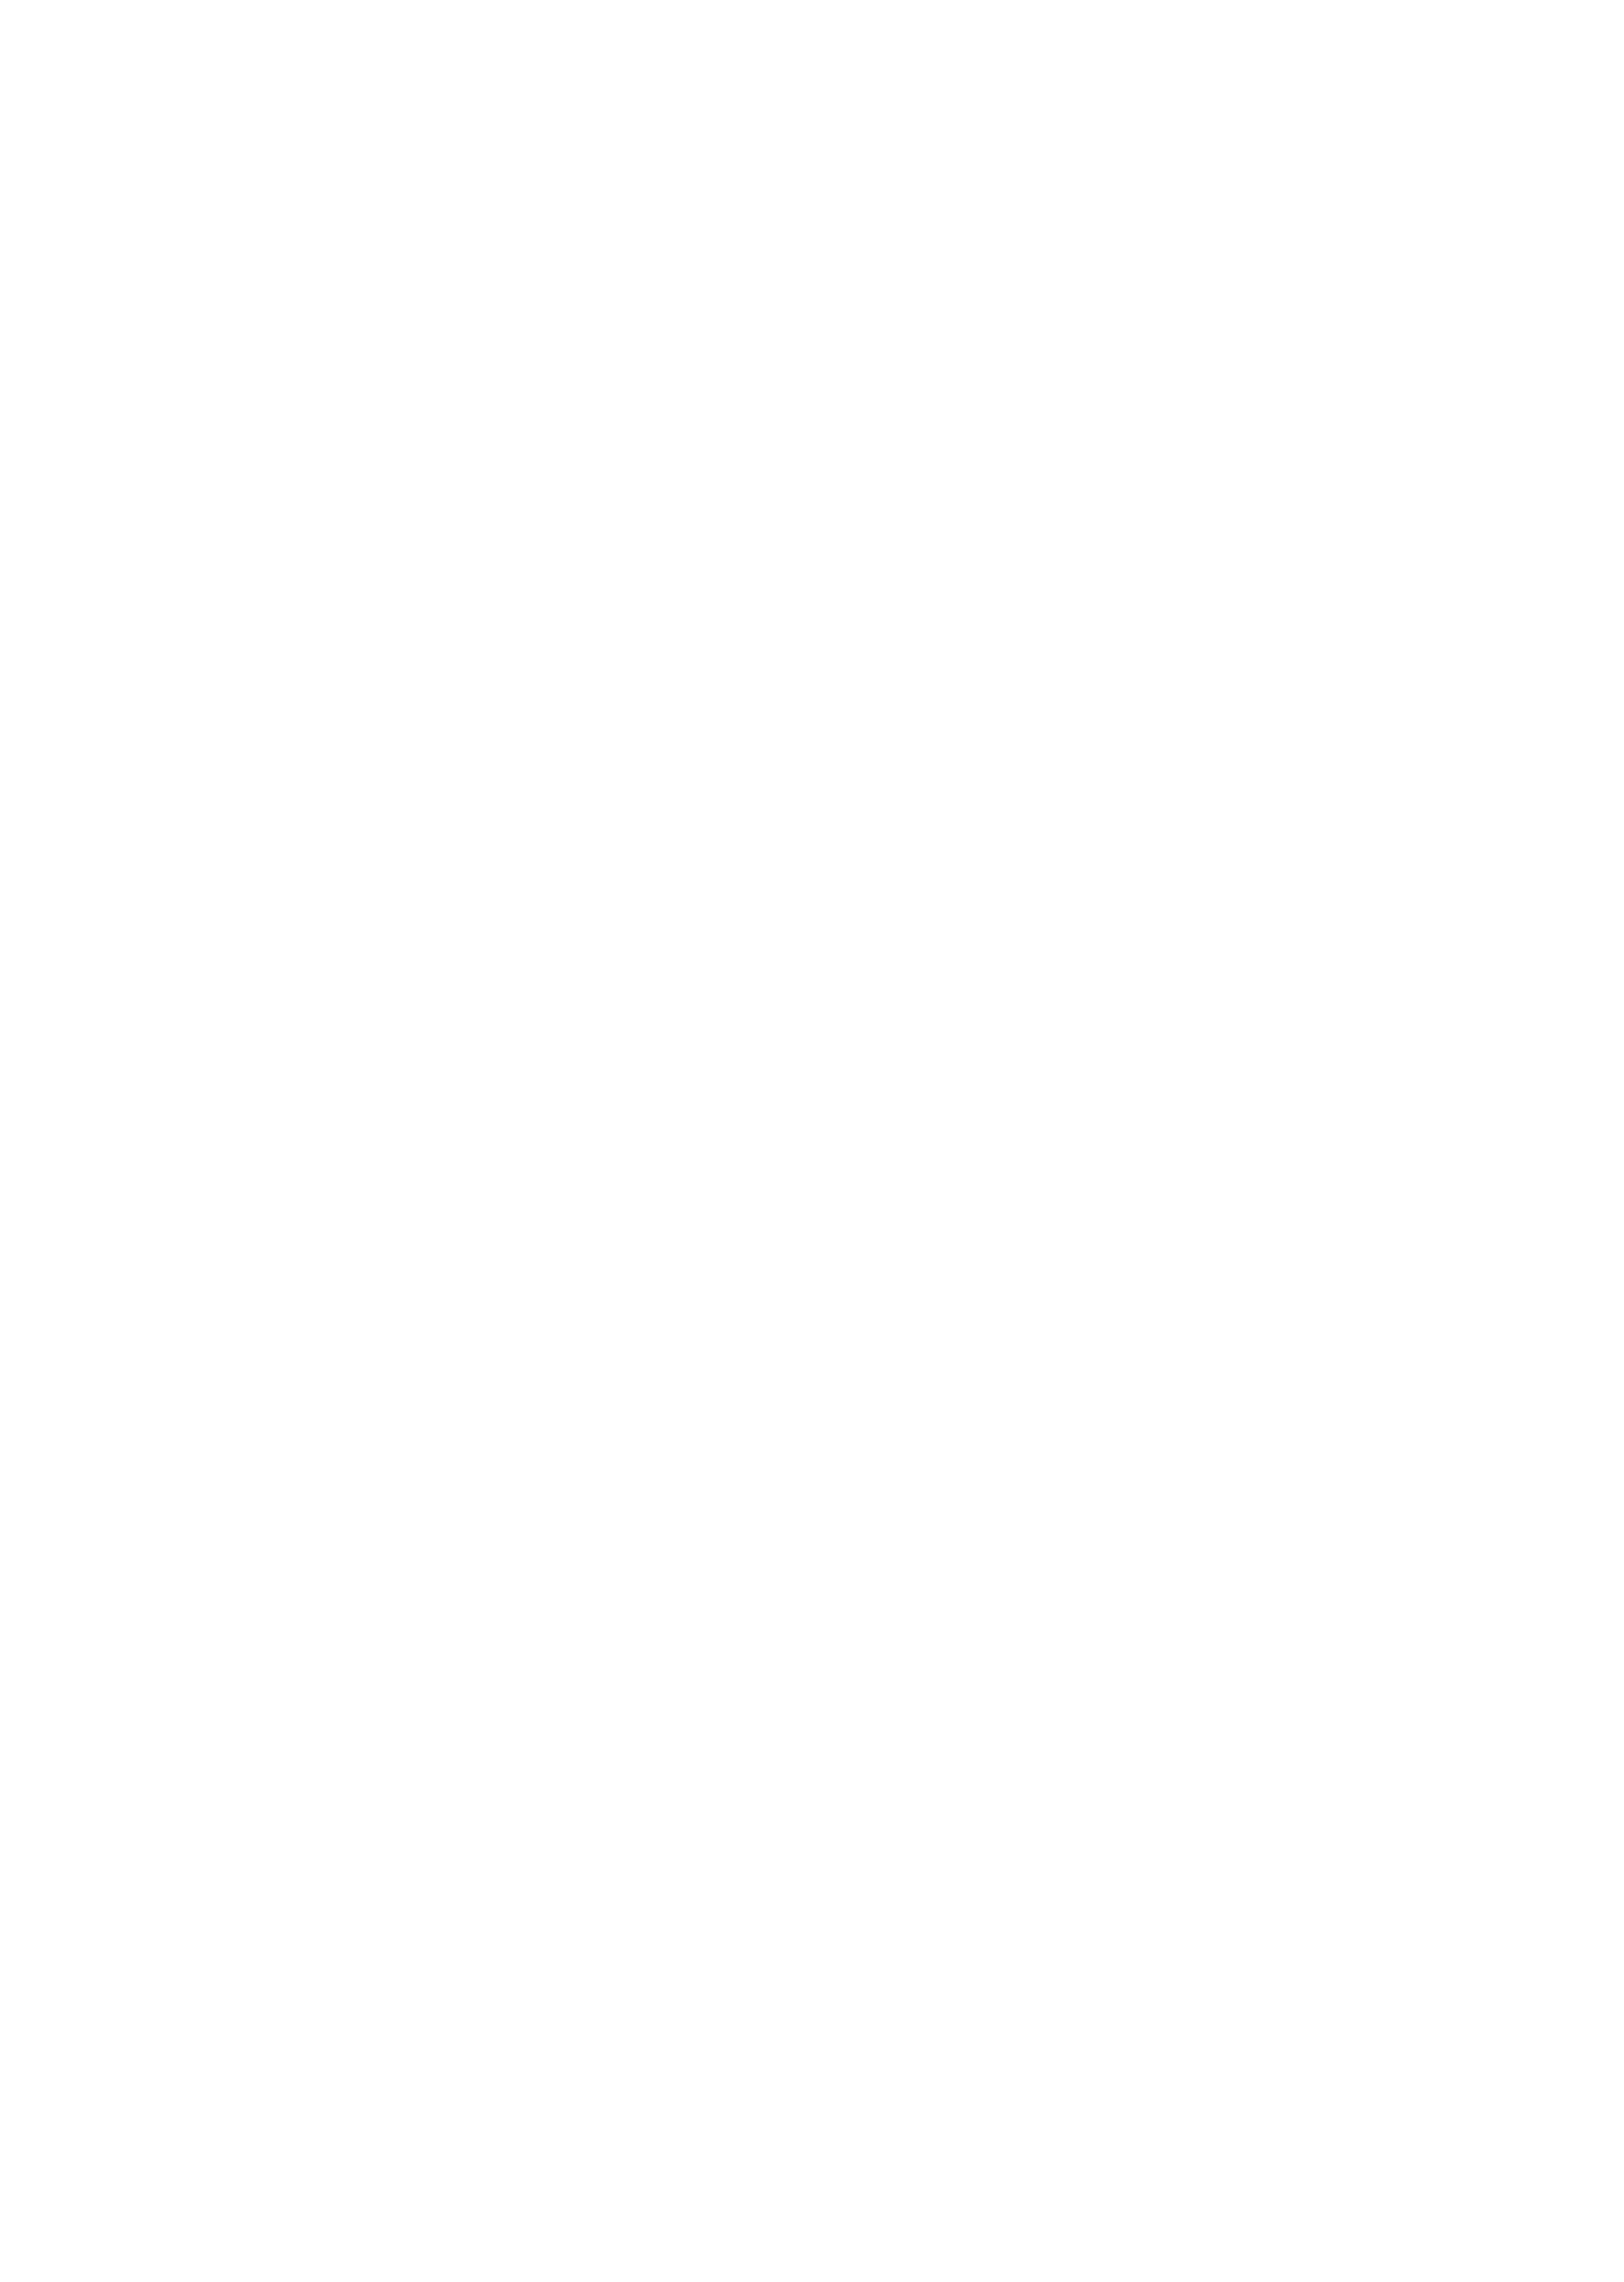 Snowflake border clipart free to use vector transparent Snowflake Deco Border Frame Transparent PNG Clip Art | Gallery ... vector transparent